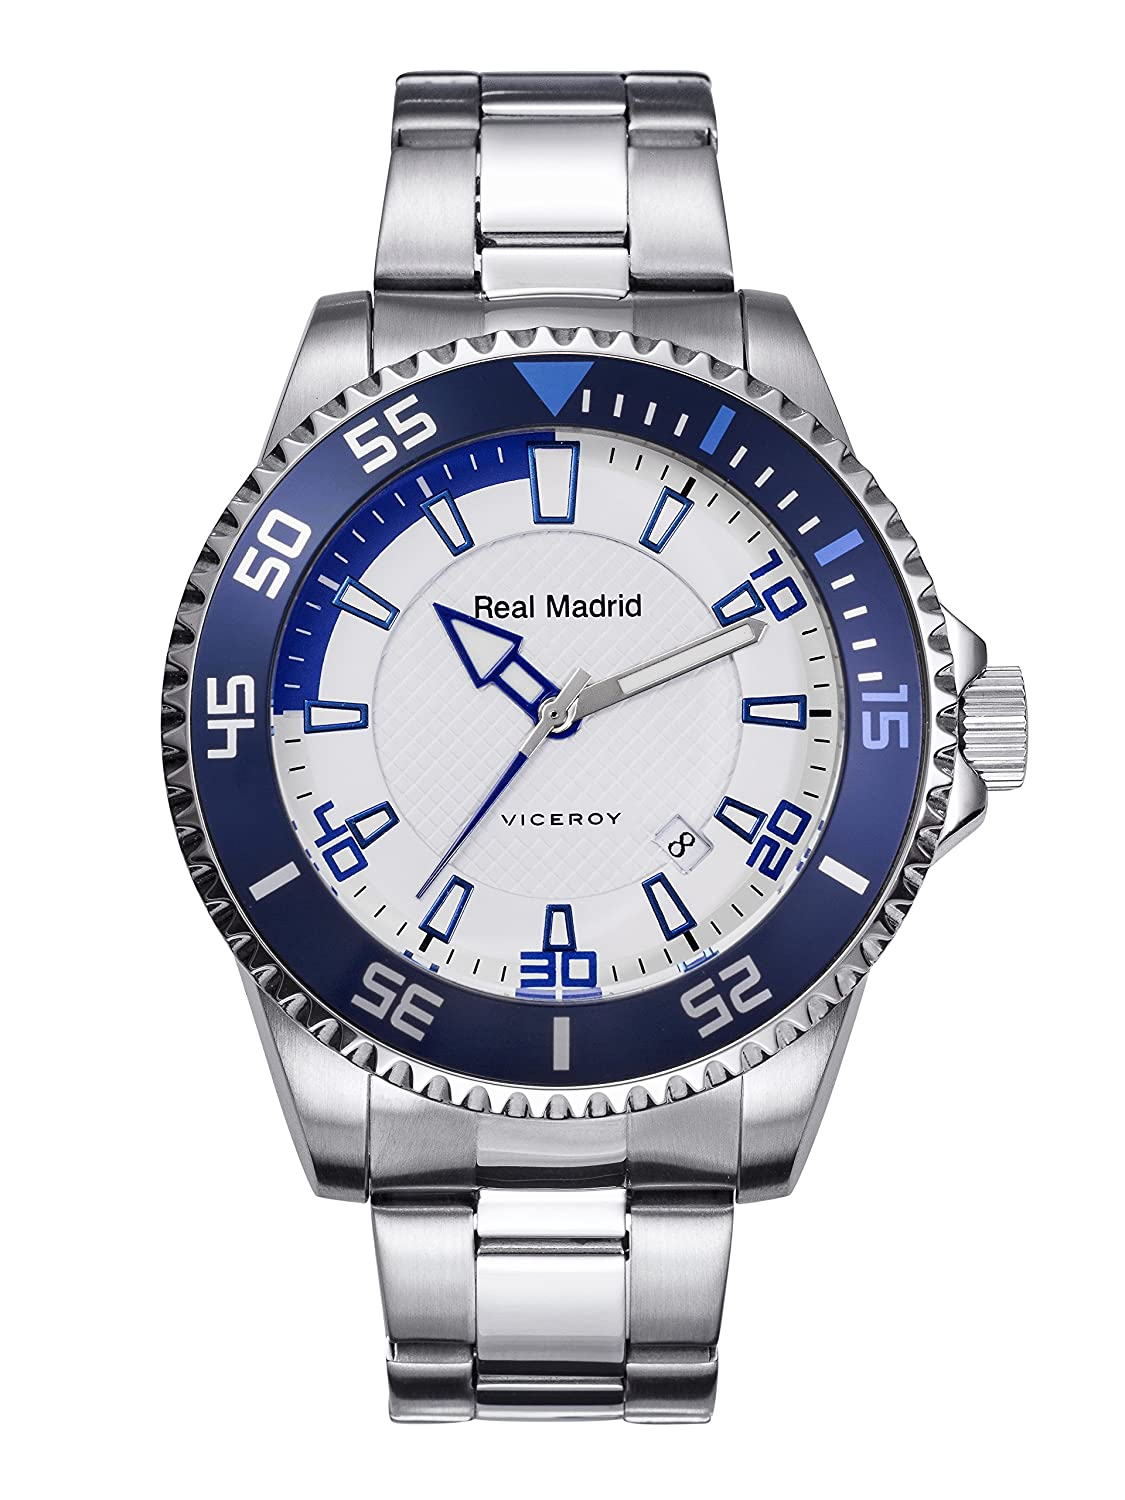 RELOJ VICEROY 432883-07 REAL MADRID HOMBRE